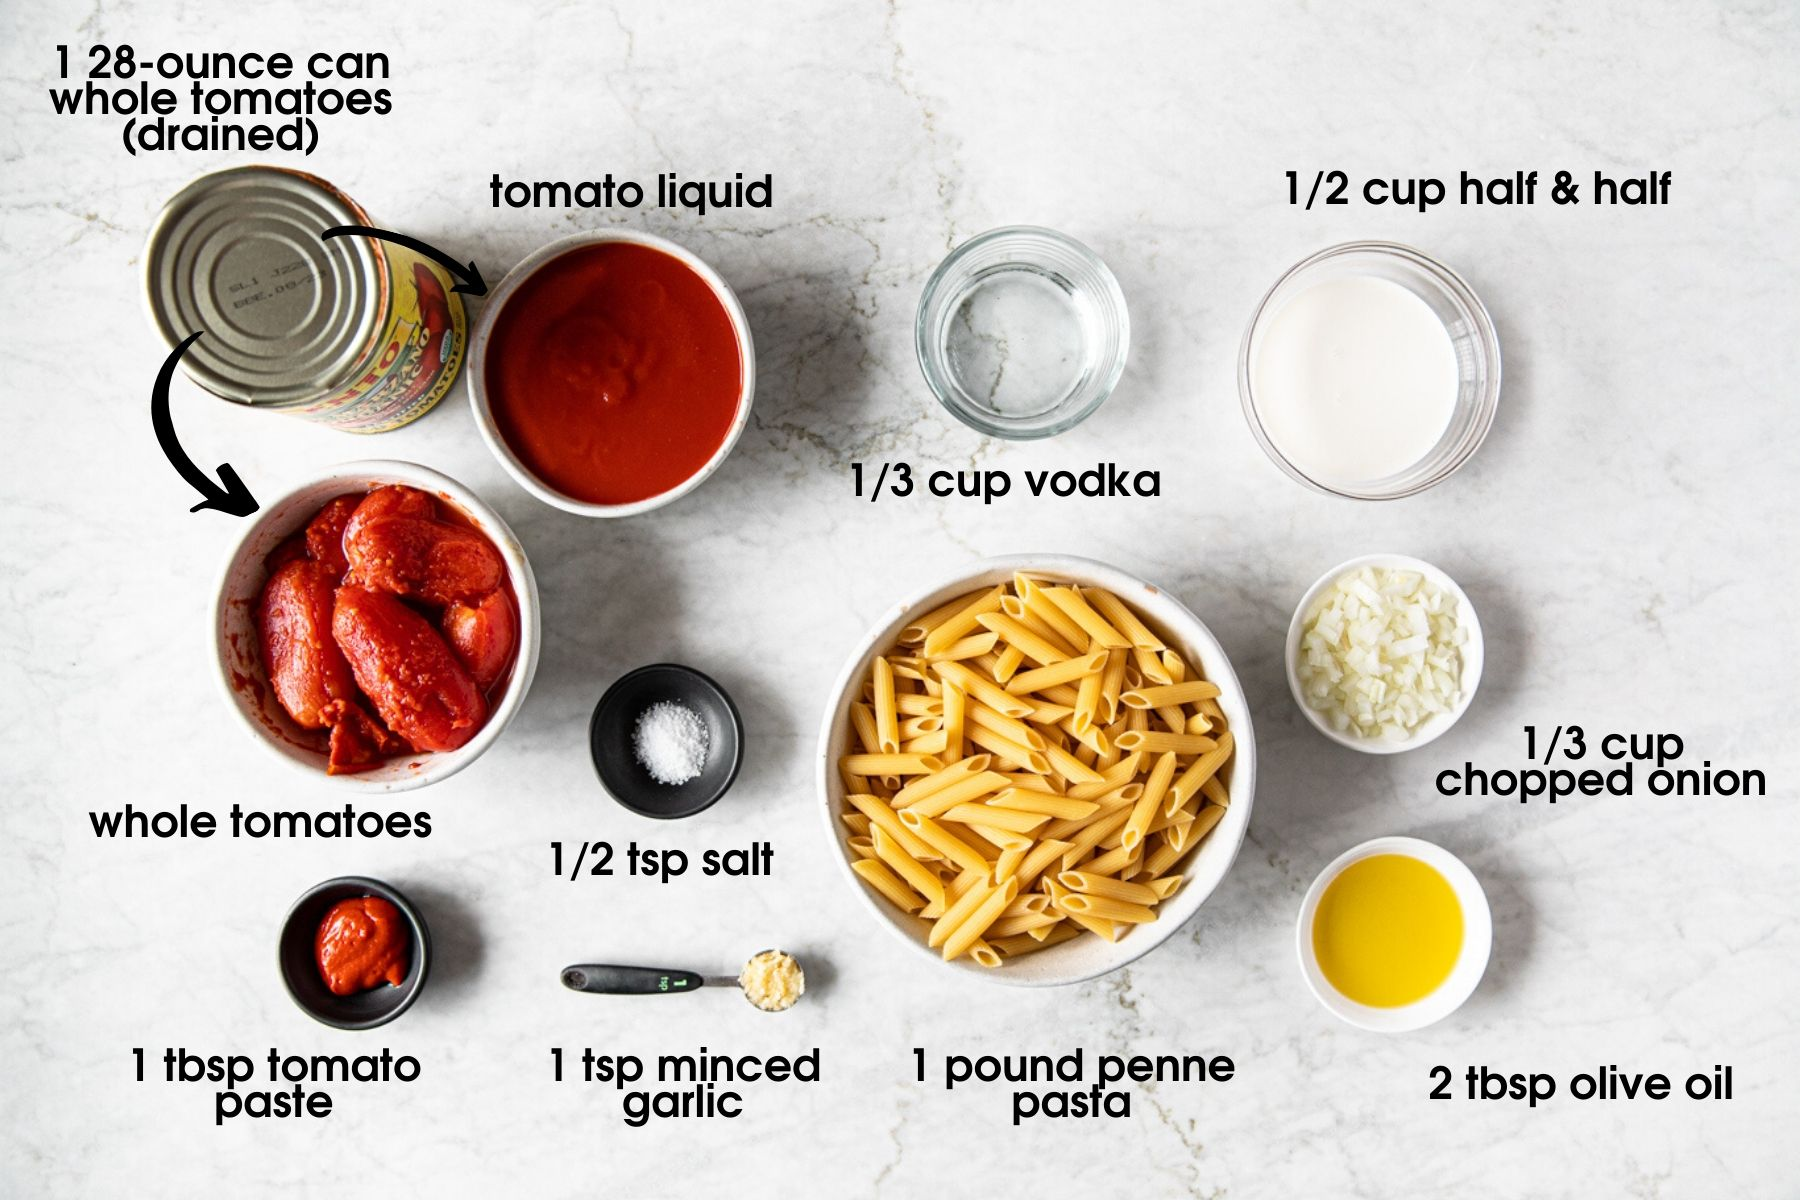 Easy Creamy Penne Alla Vodka Recipe Ingredients, including whole tomatoes, vodka, half & half, onion, olive oil, tomato paste, salt, minced garlic, and penne pasta